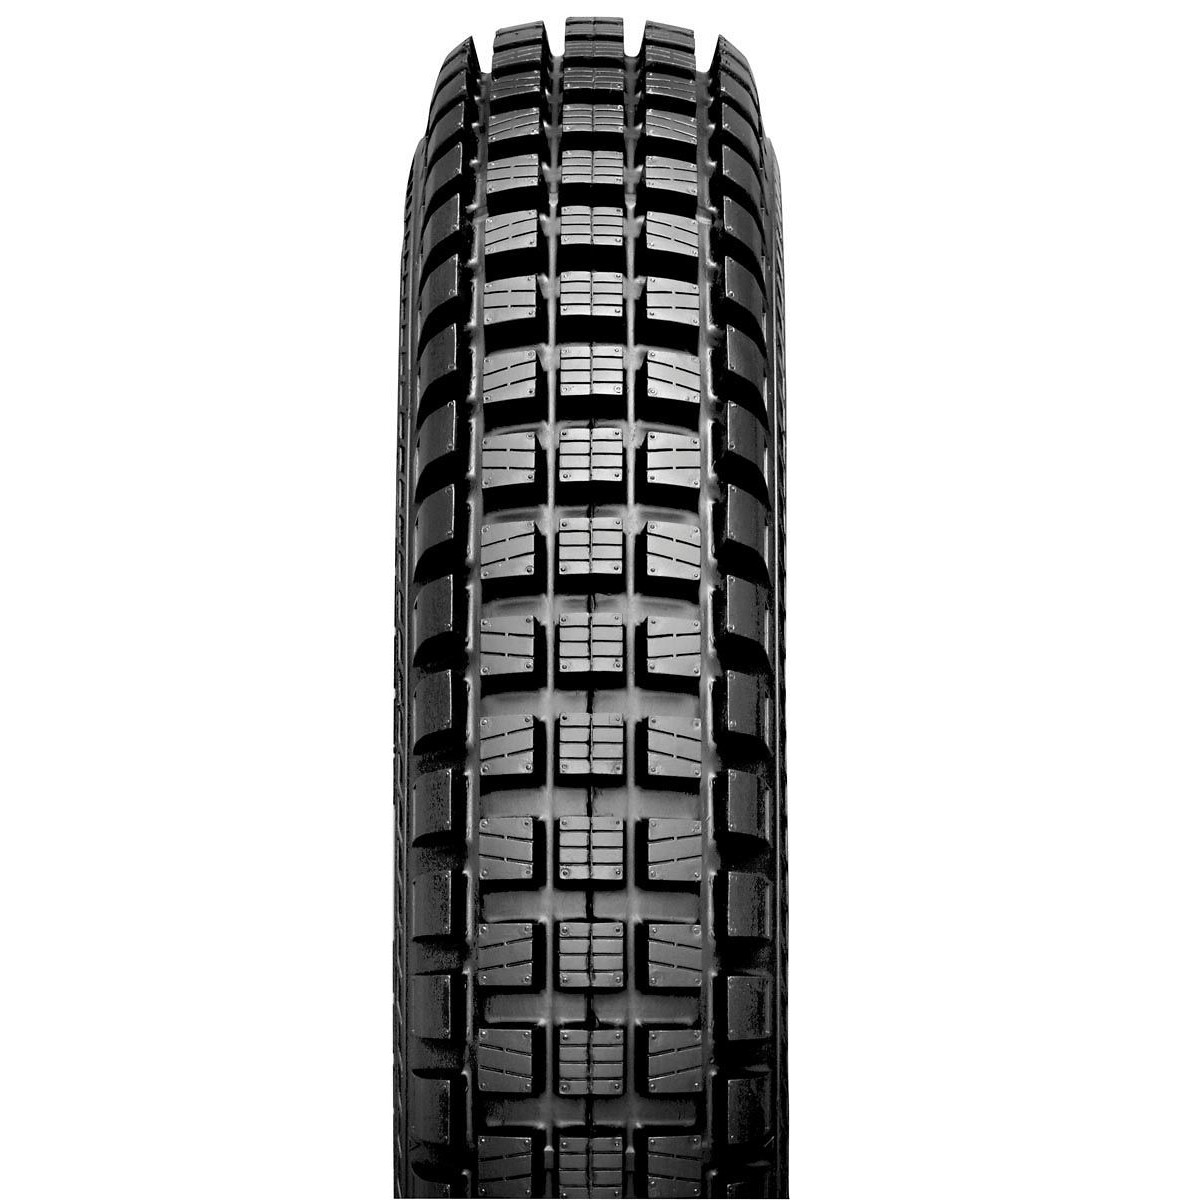 IRC Tr 1 Dual Sport Front Rear Tire  0000-irc-tr-1-dual-sport-front-rear-tire-mcss.jpg